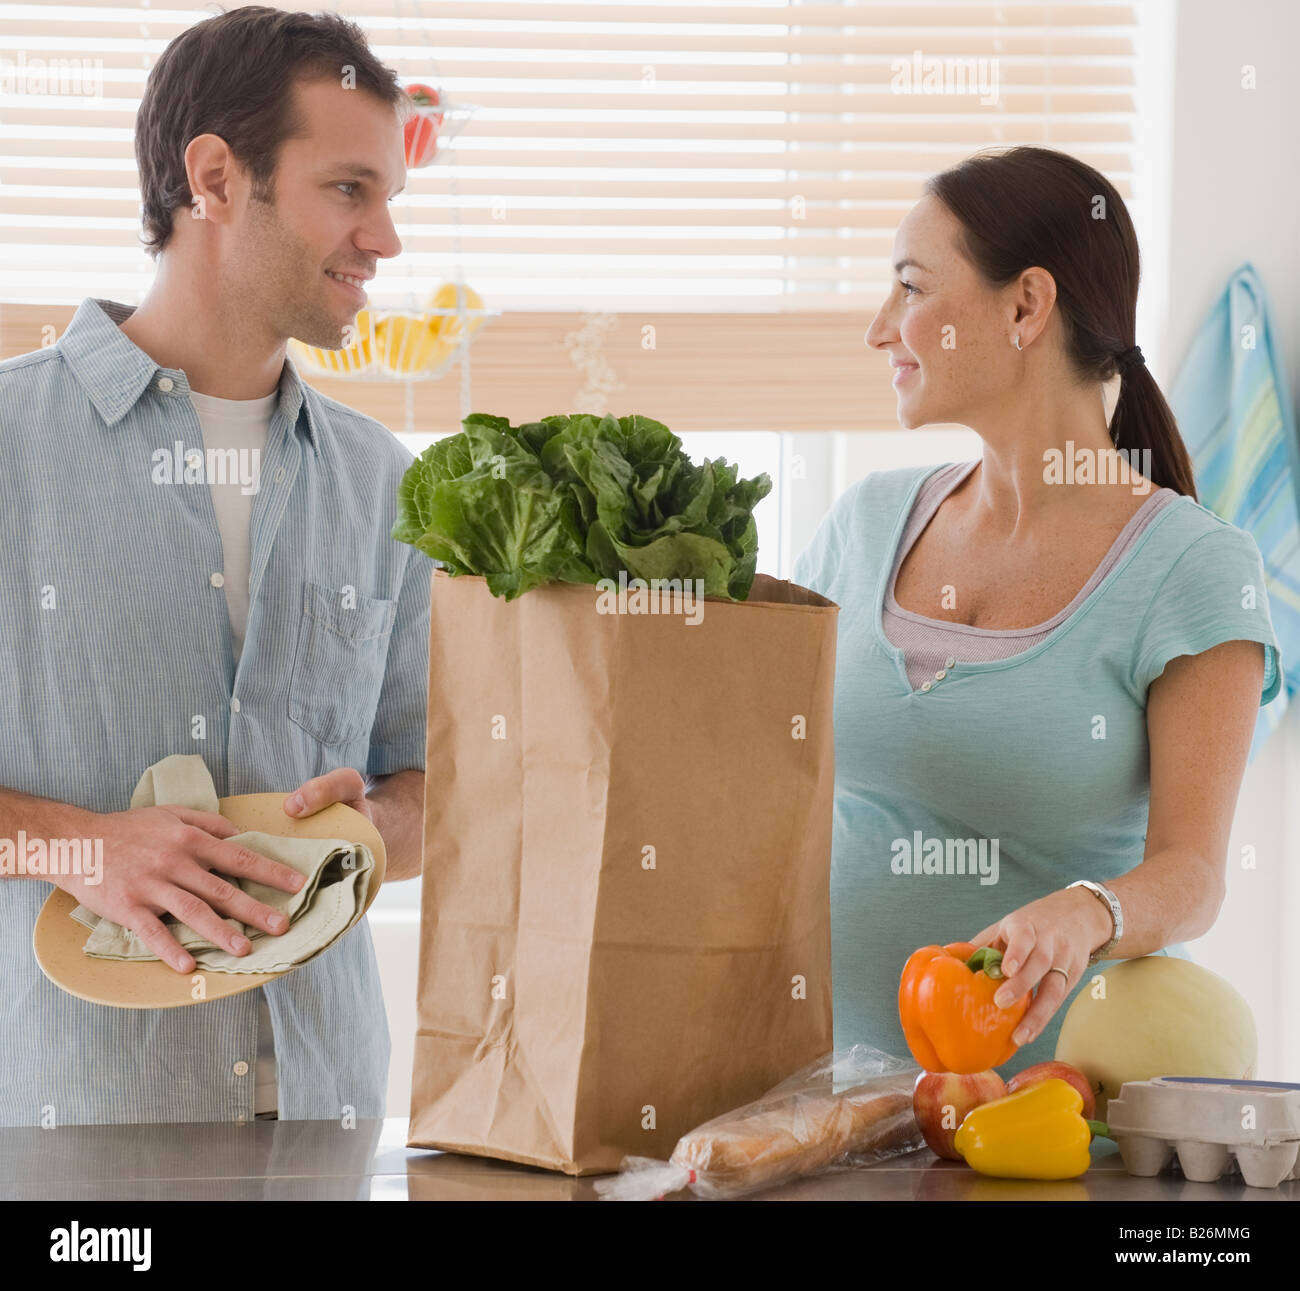 Pregnant Hispanic couple unpacking groceries - Stock Image